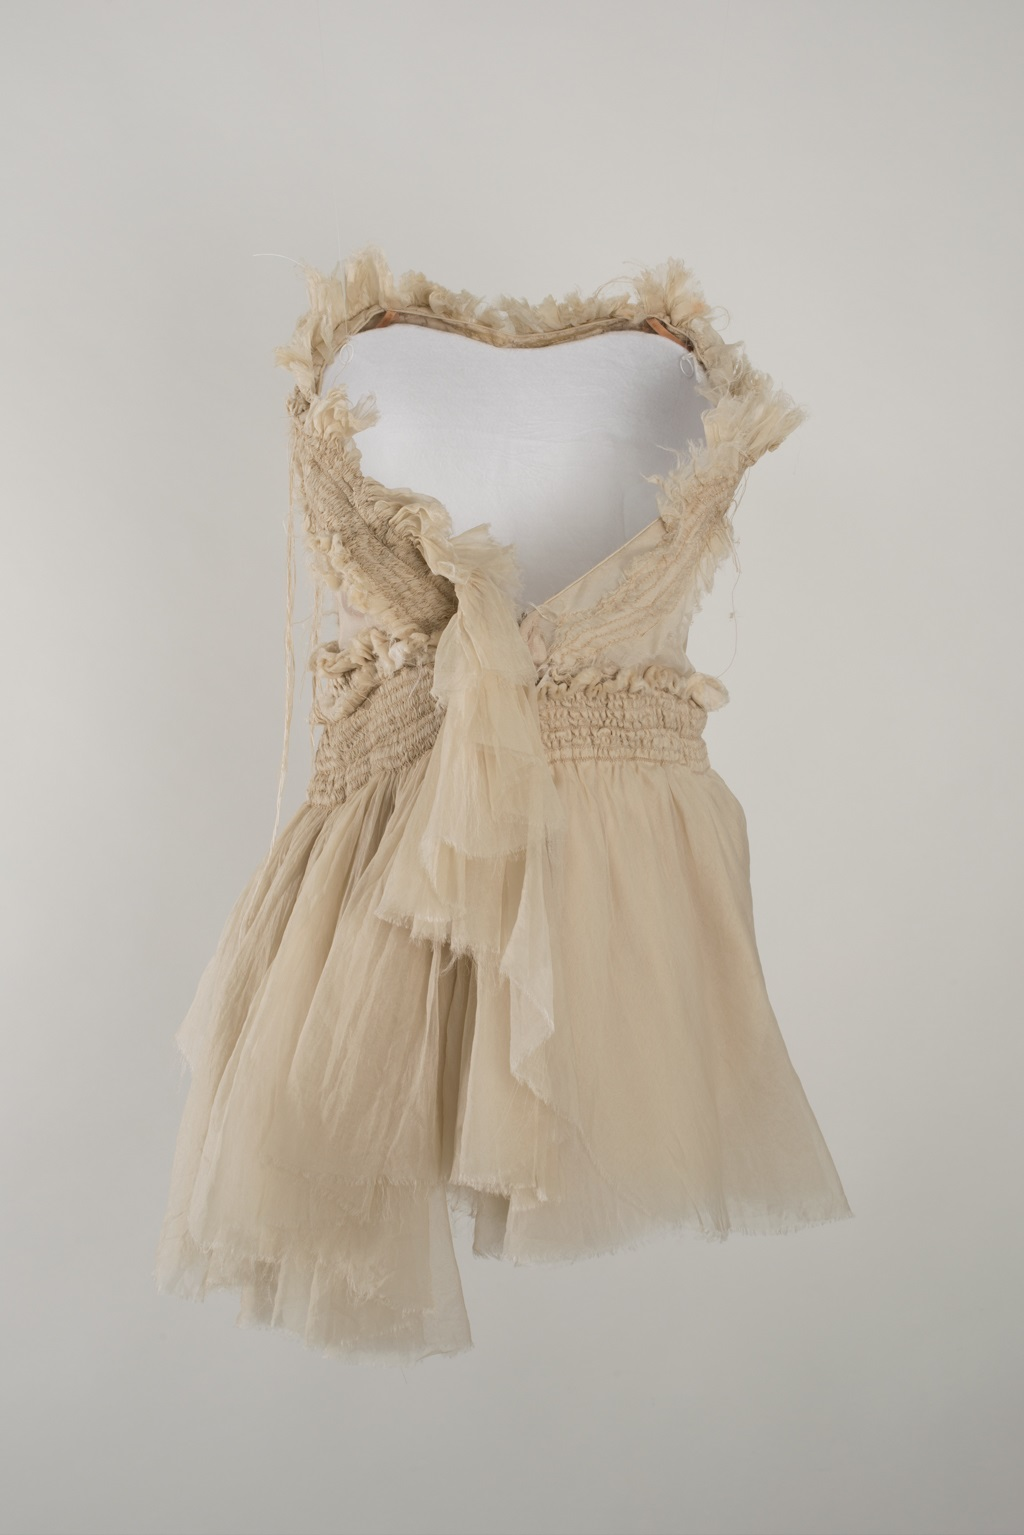 A dance costume designed by Akira Isogawa that is supported by one of the 'invisible' white moulded forms. The dress is made from off-white fabric, with a short skirt, wide v-neck and elasticated waist. The edges of the fabric are left deliberately frayed.